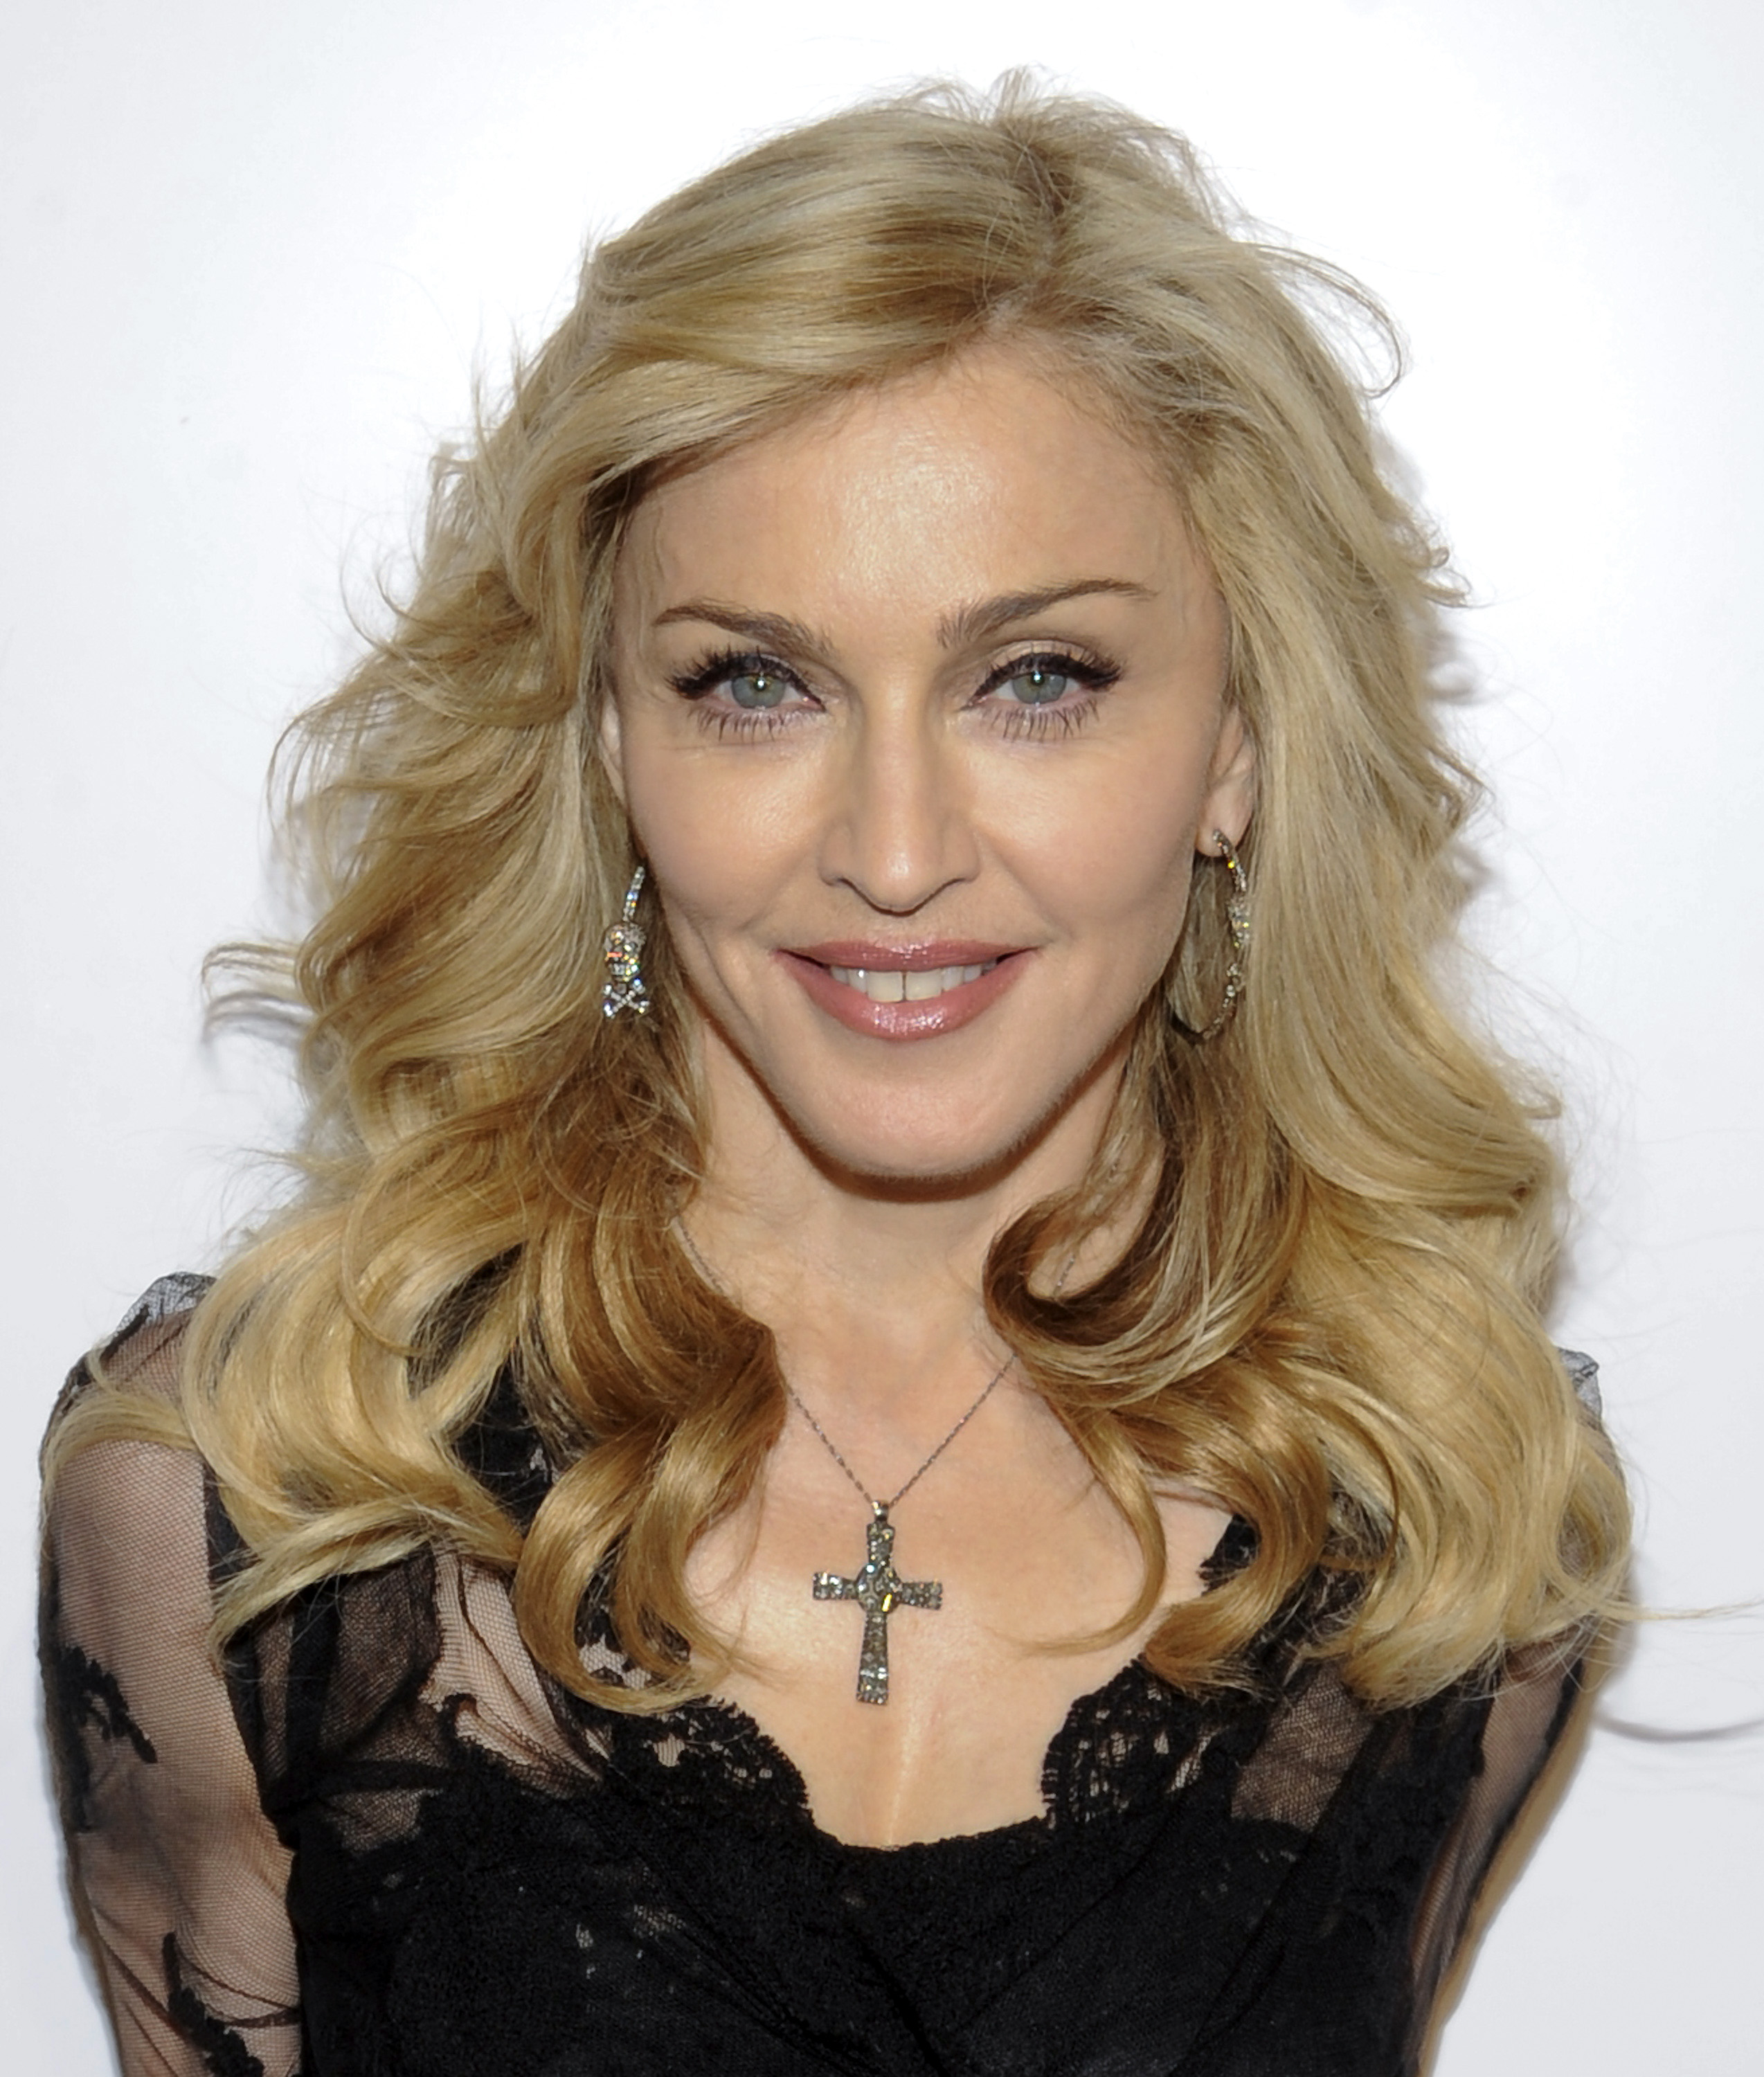 Madonna Songwriter and Actress 169.6 Kb